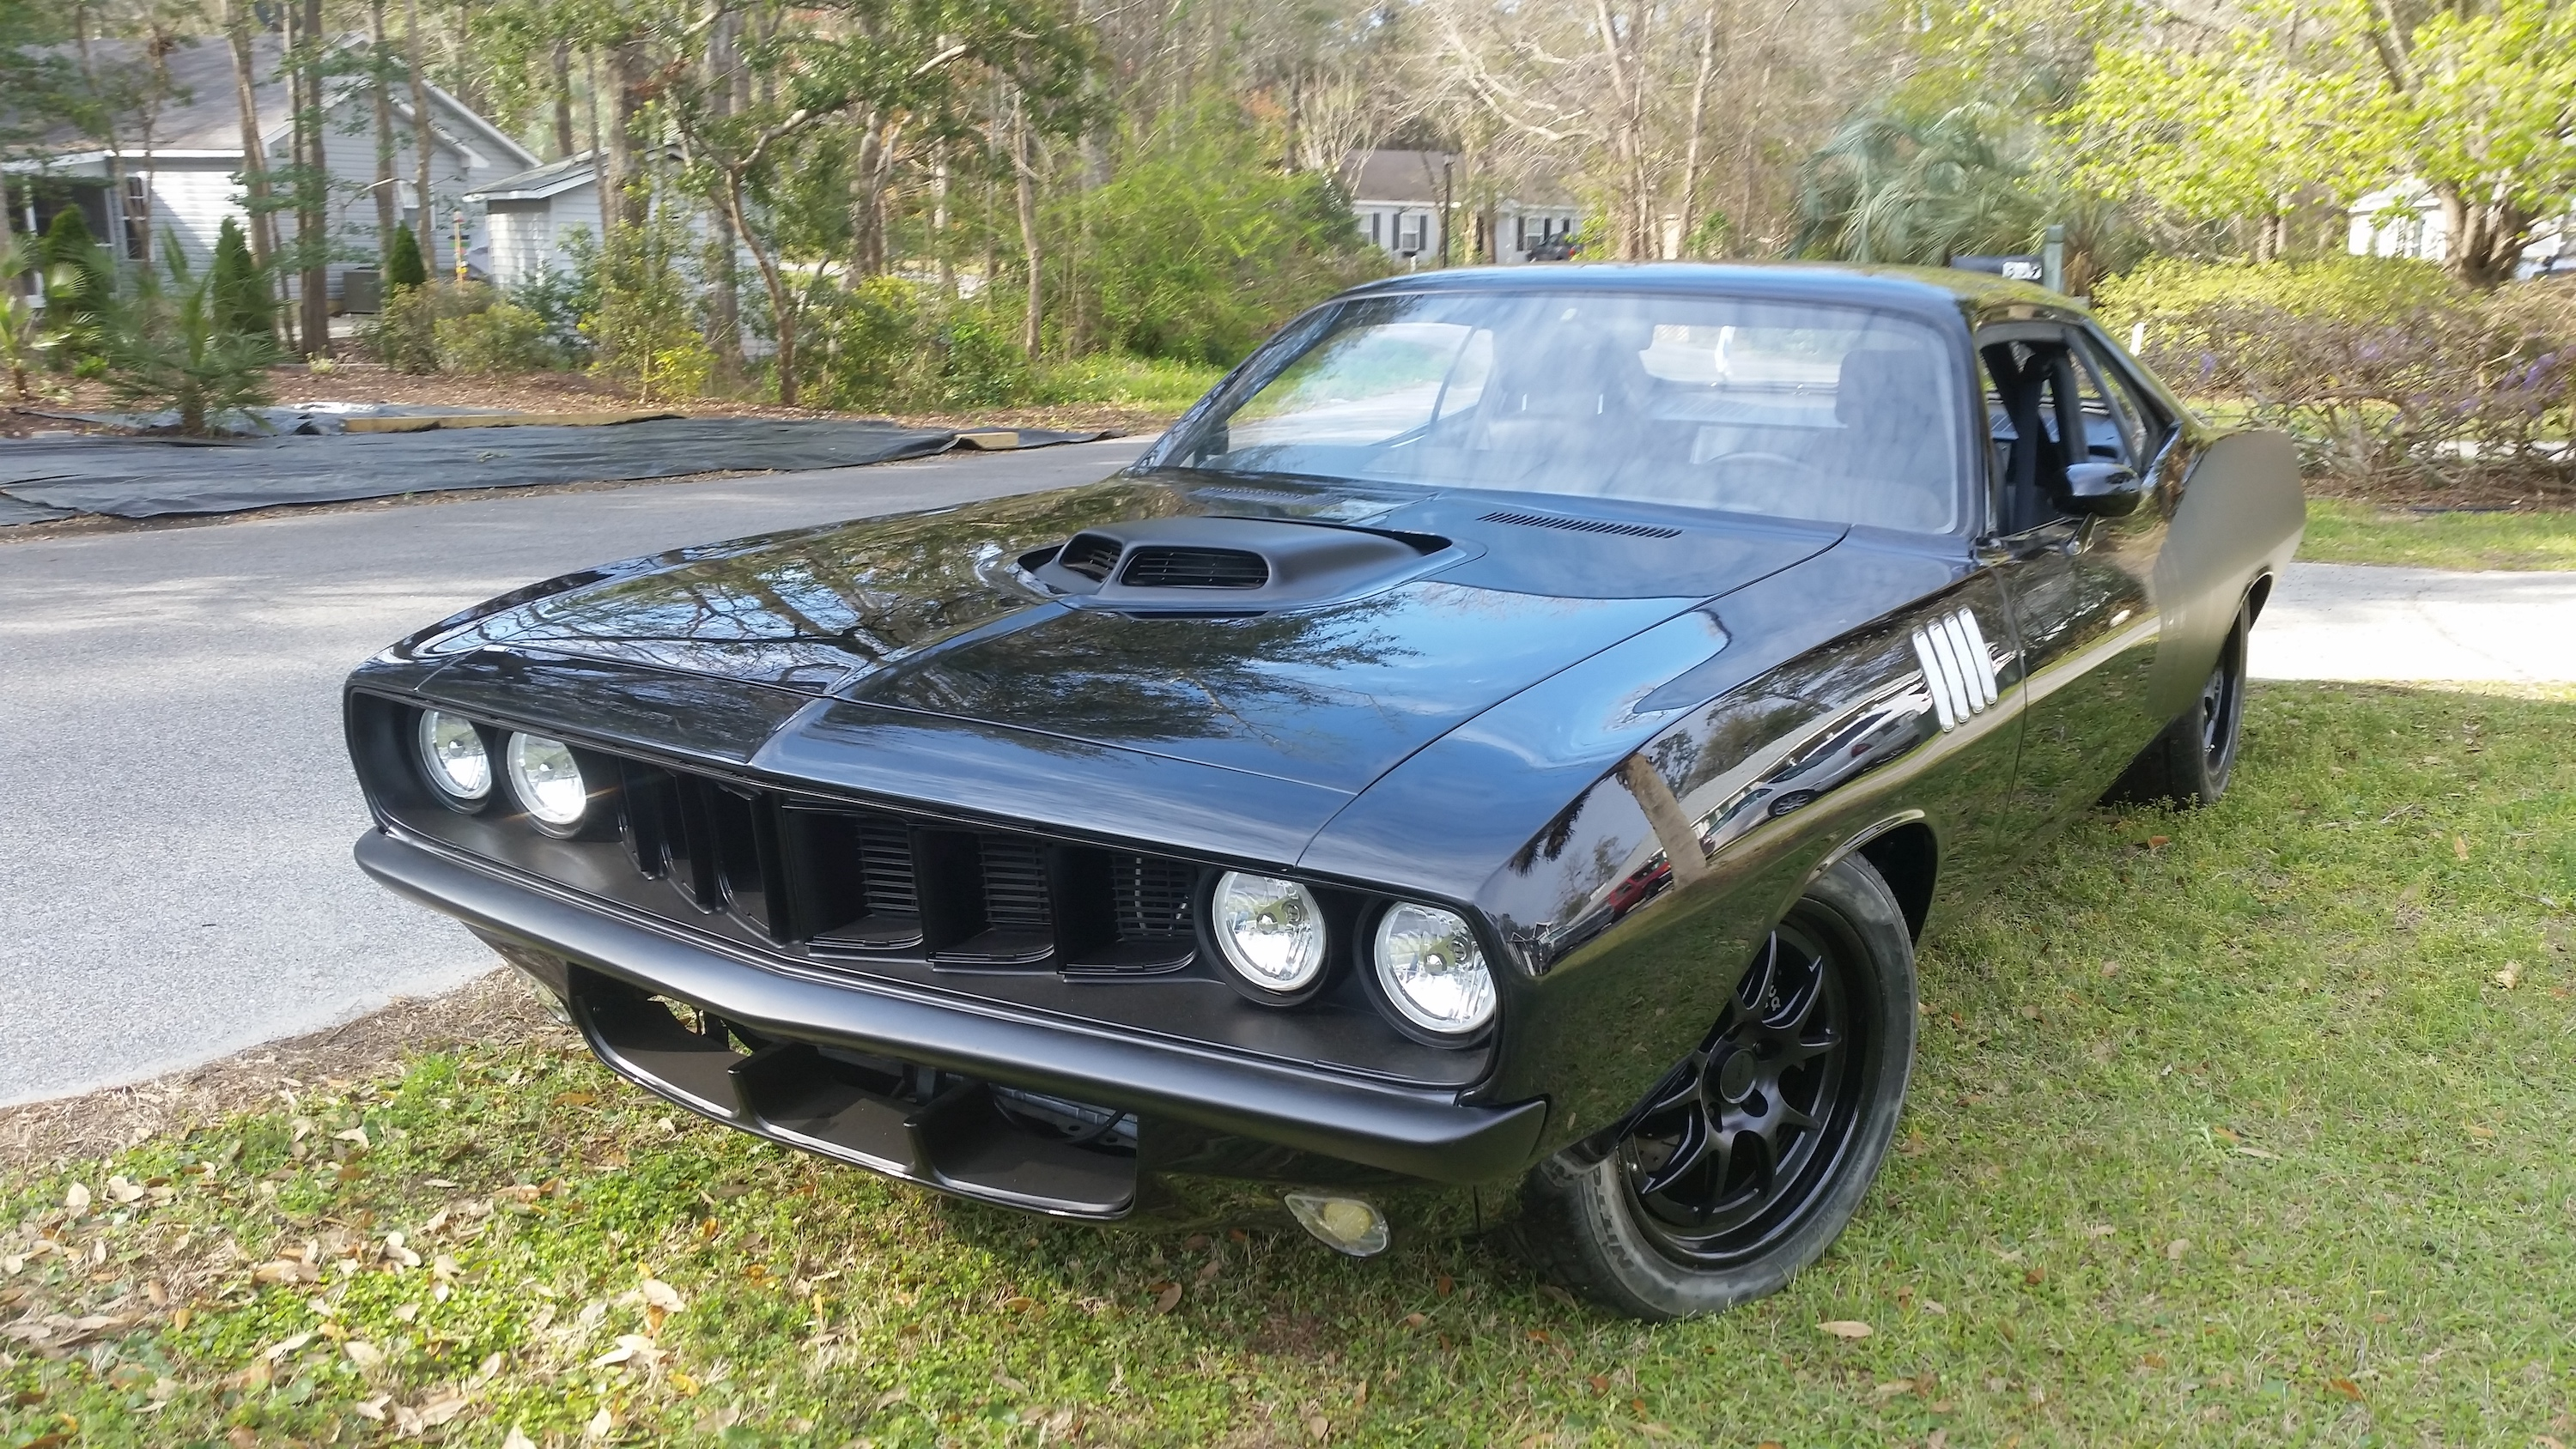 a black 1971 plymouth barracuda